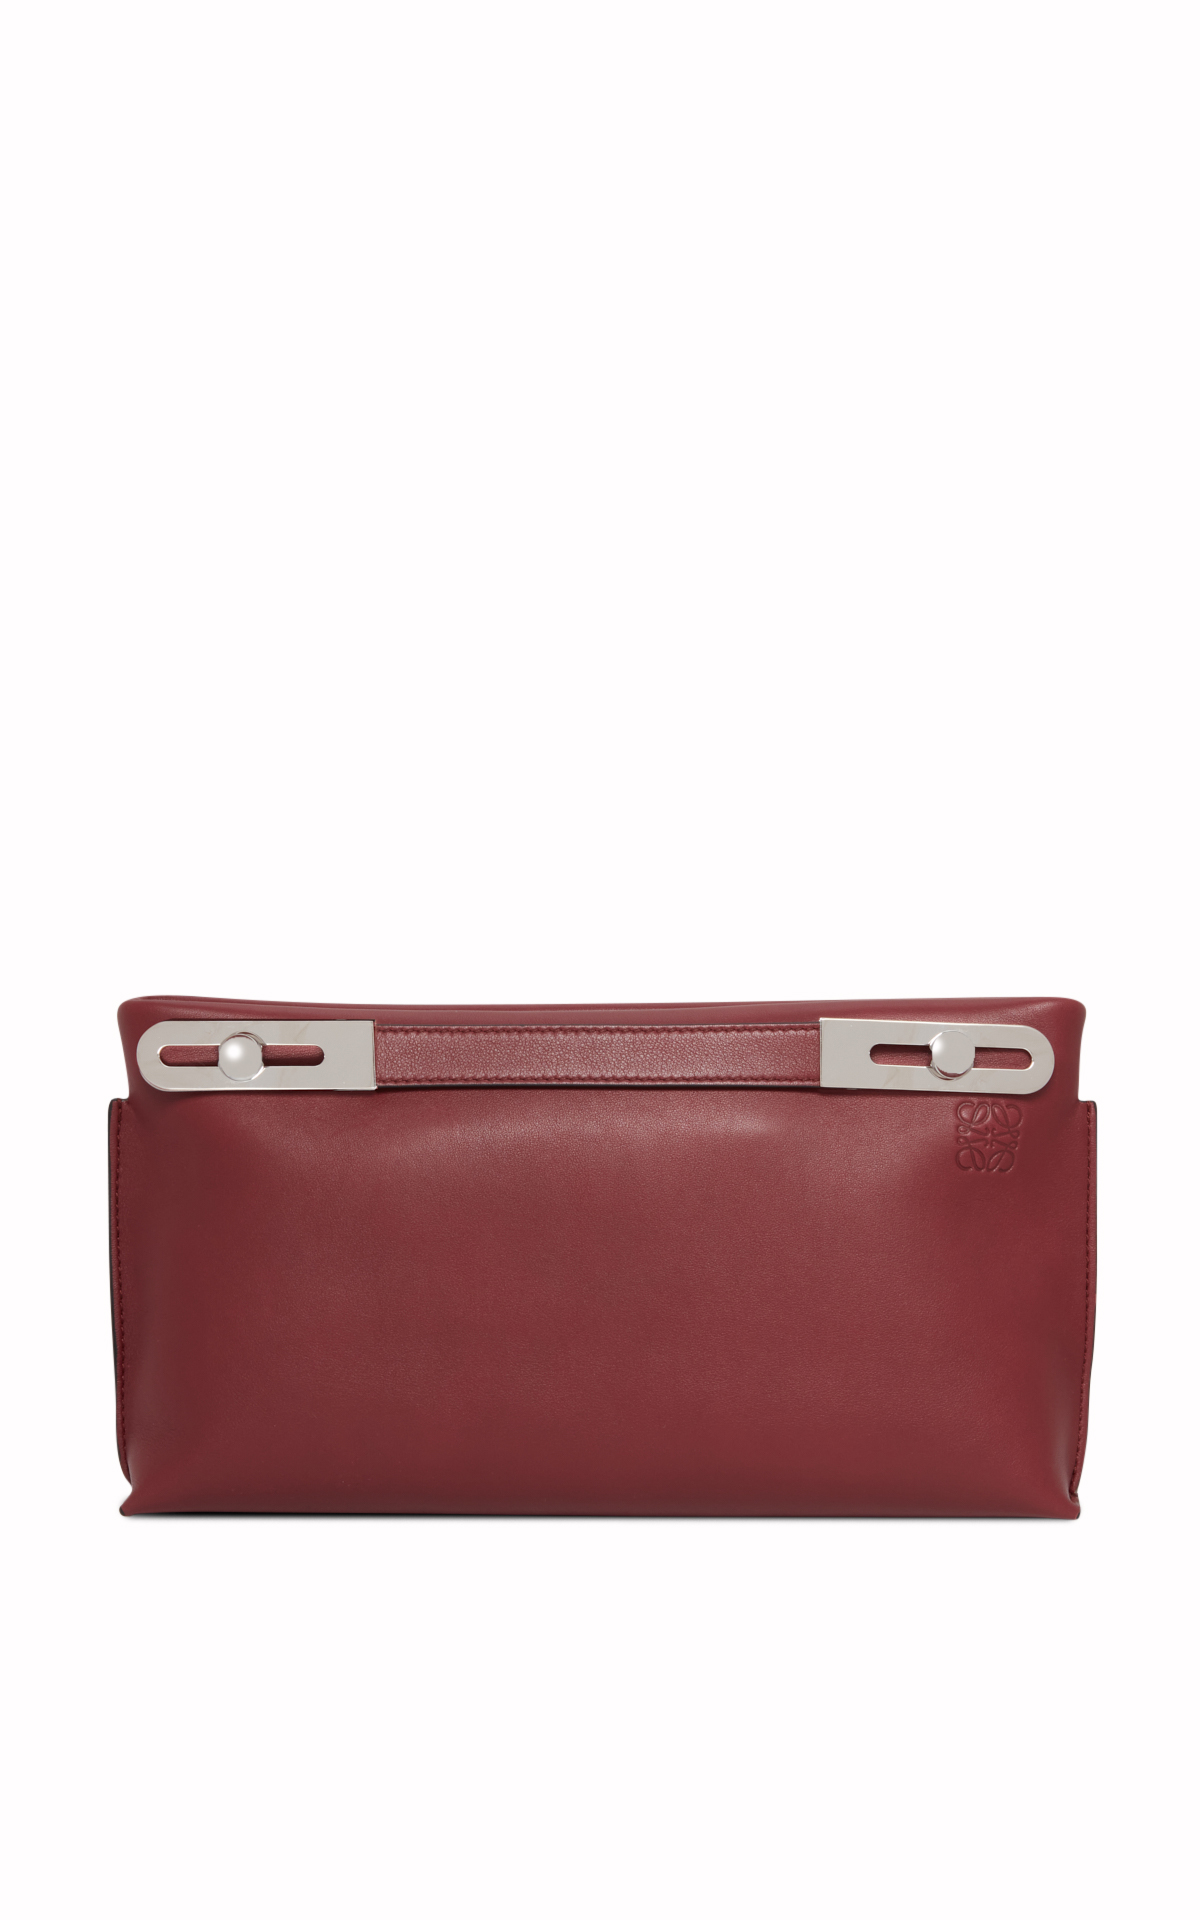 Pouch by Loewe